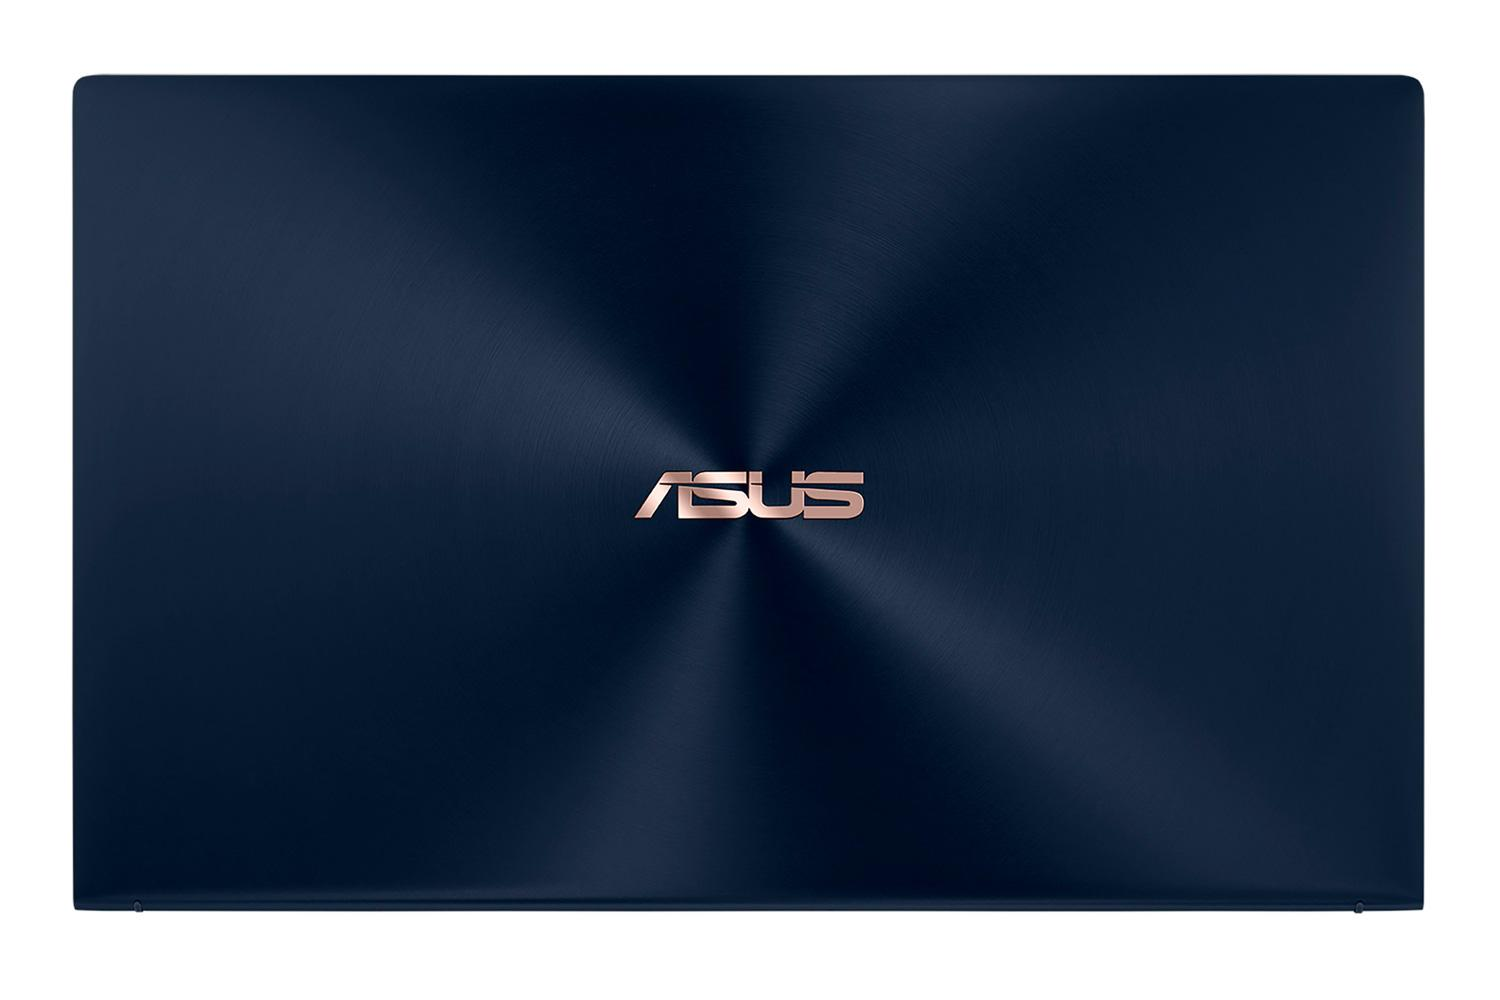 Ordinateur portable Asus ZenBook UX534FT-A9011T Bleu - GTX 1650 Max-Q, SSD 1 To, ScreenPad - photo 6